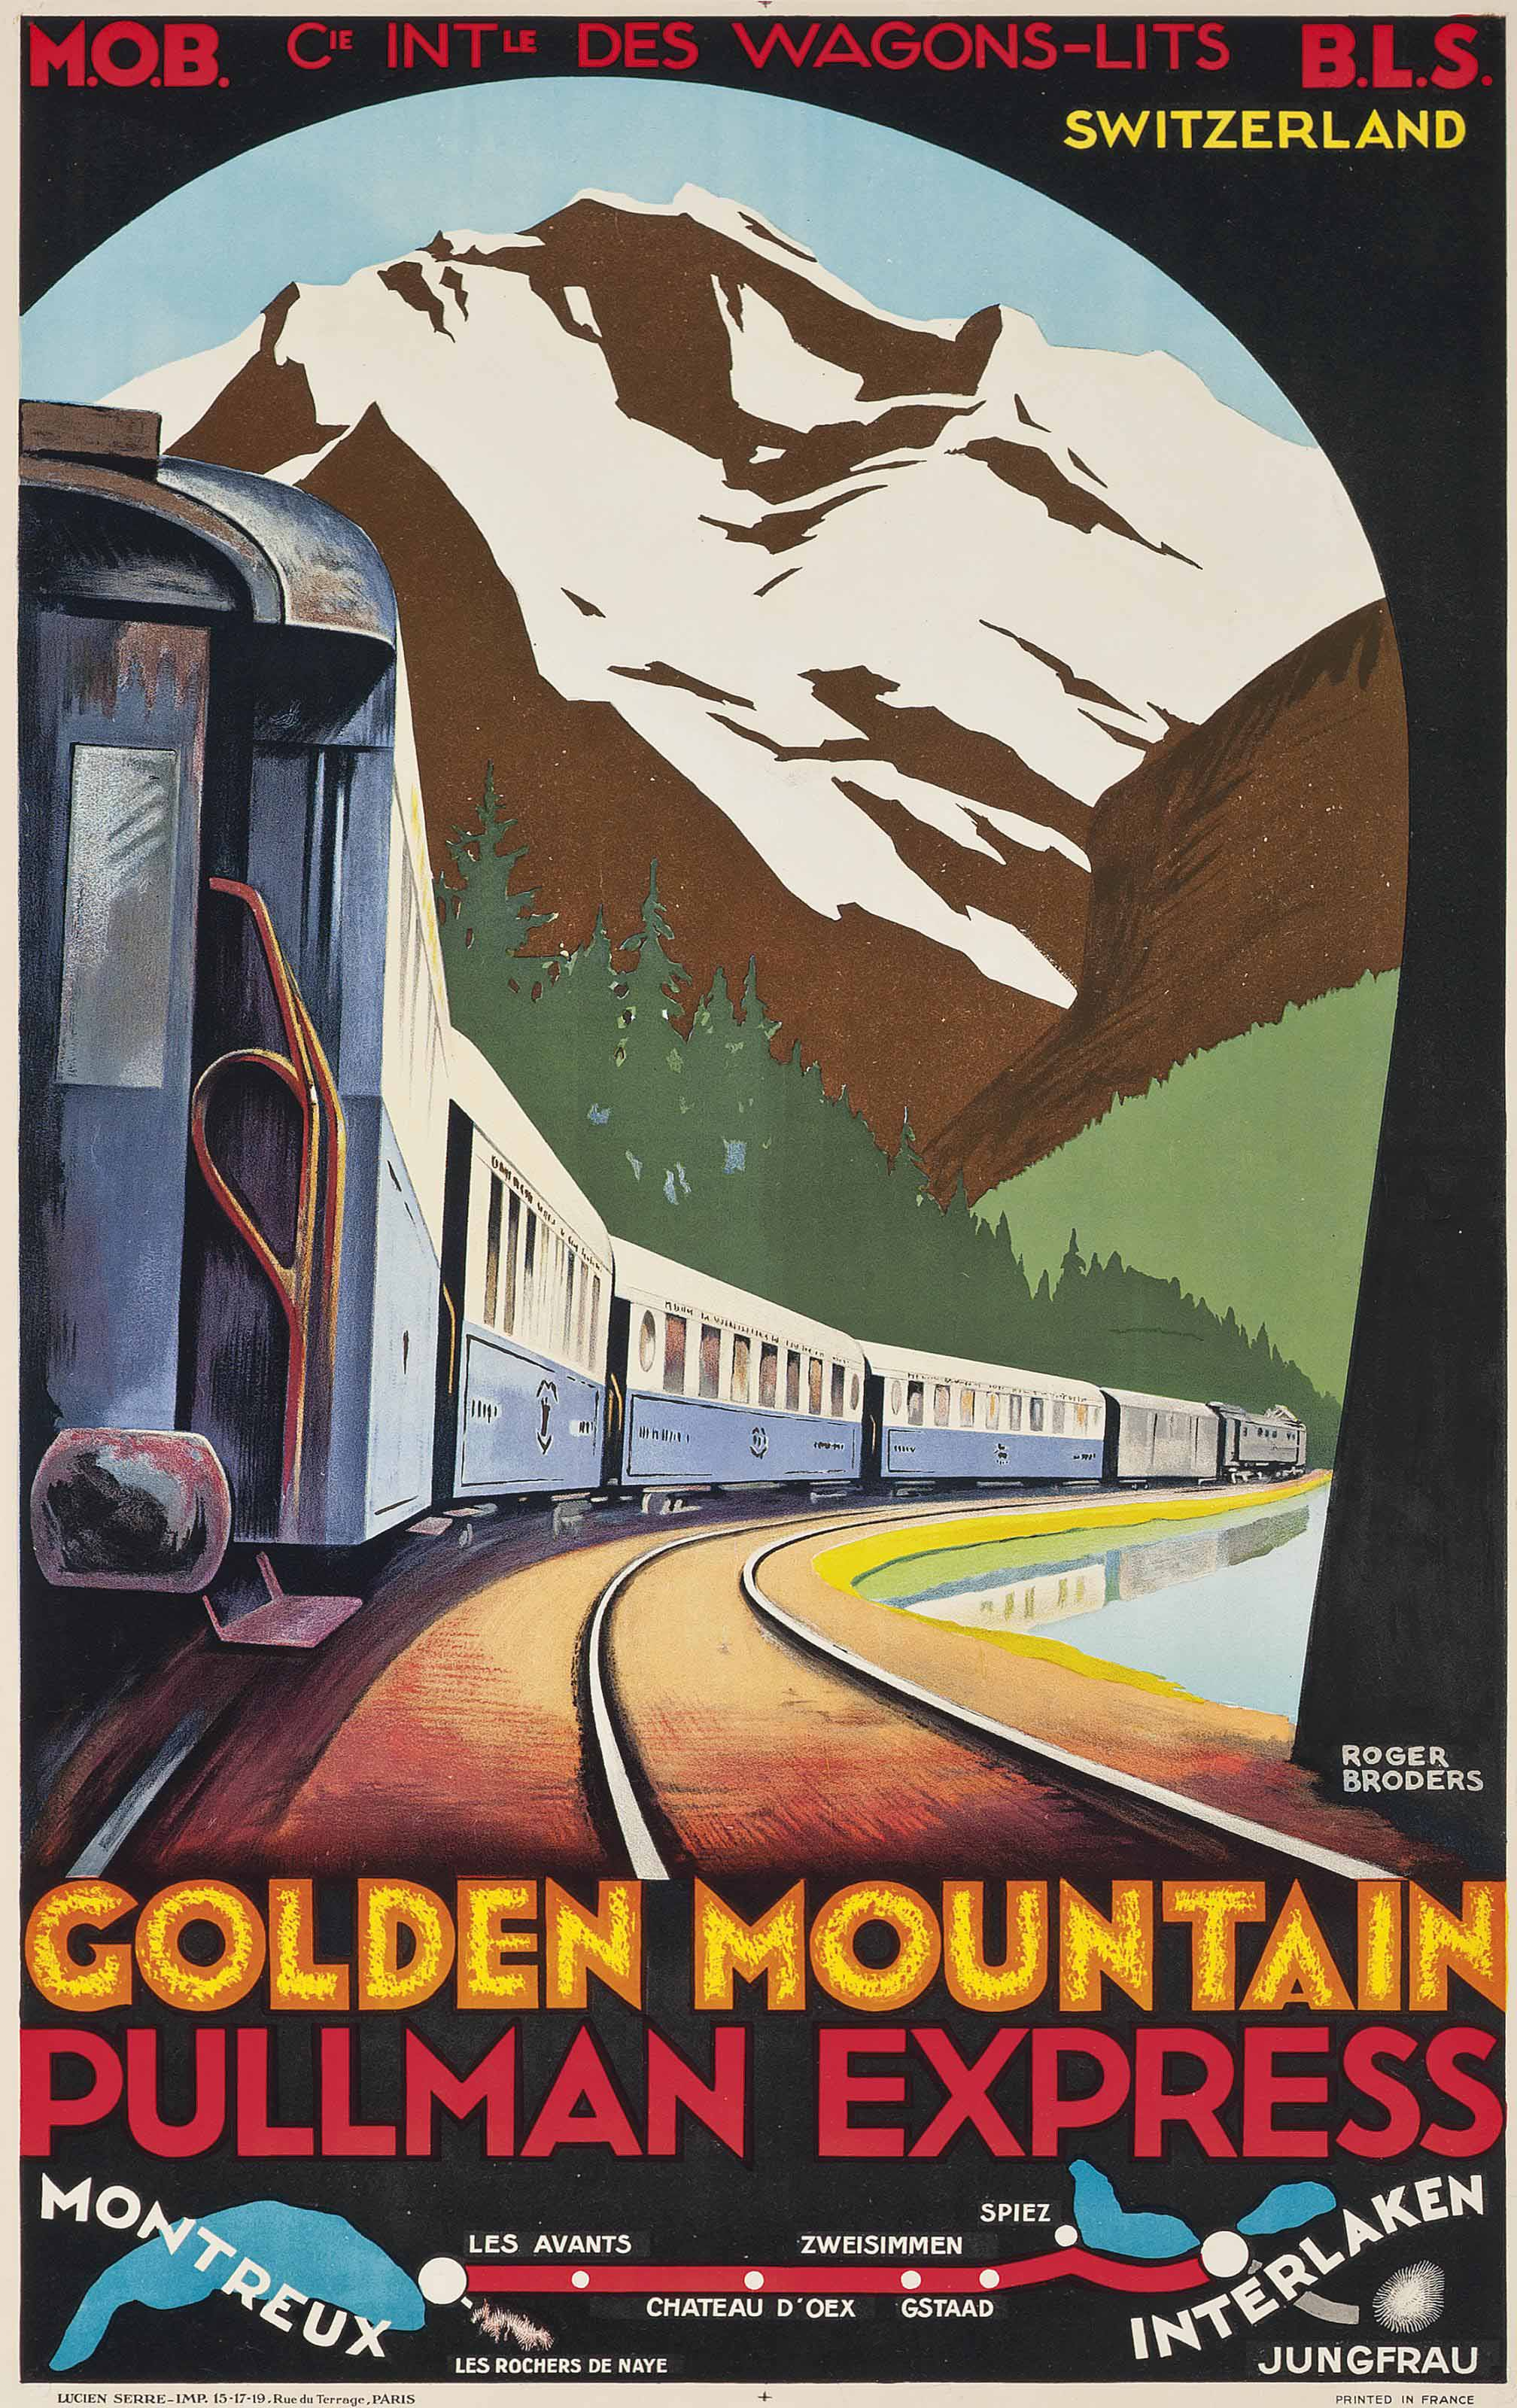 GOLDEN MOUNTAIN, PULLMAN EXPRESS